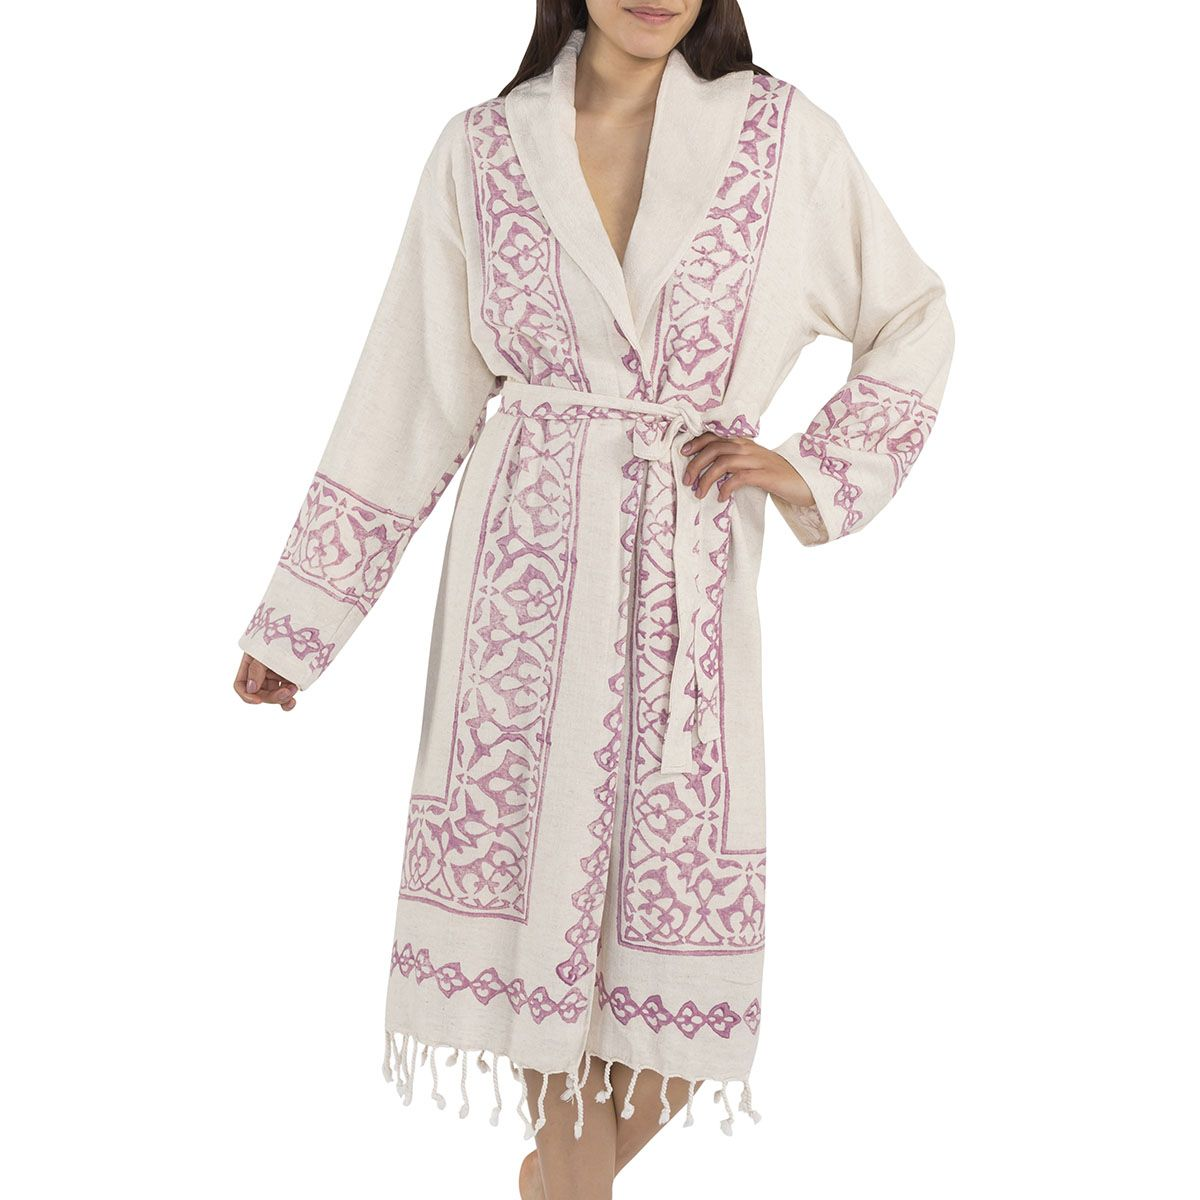 Bathrobe Hand Printed with towel lining 03 - Dusty Rose Print